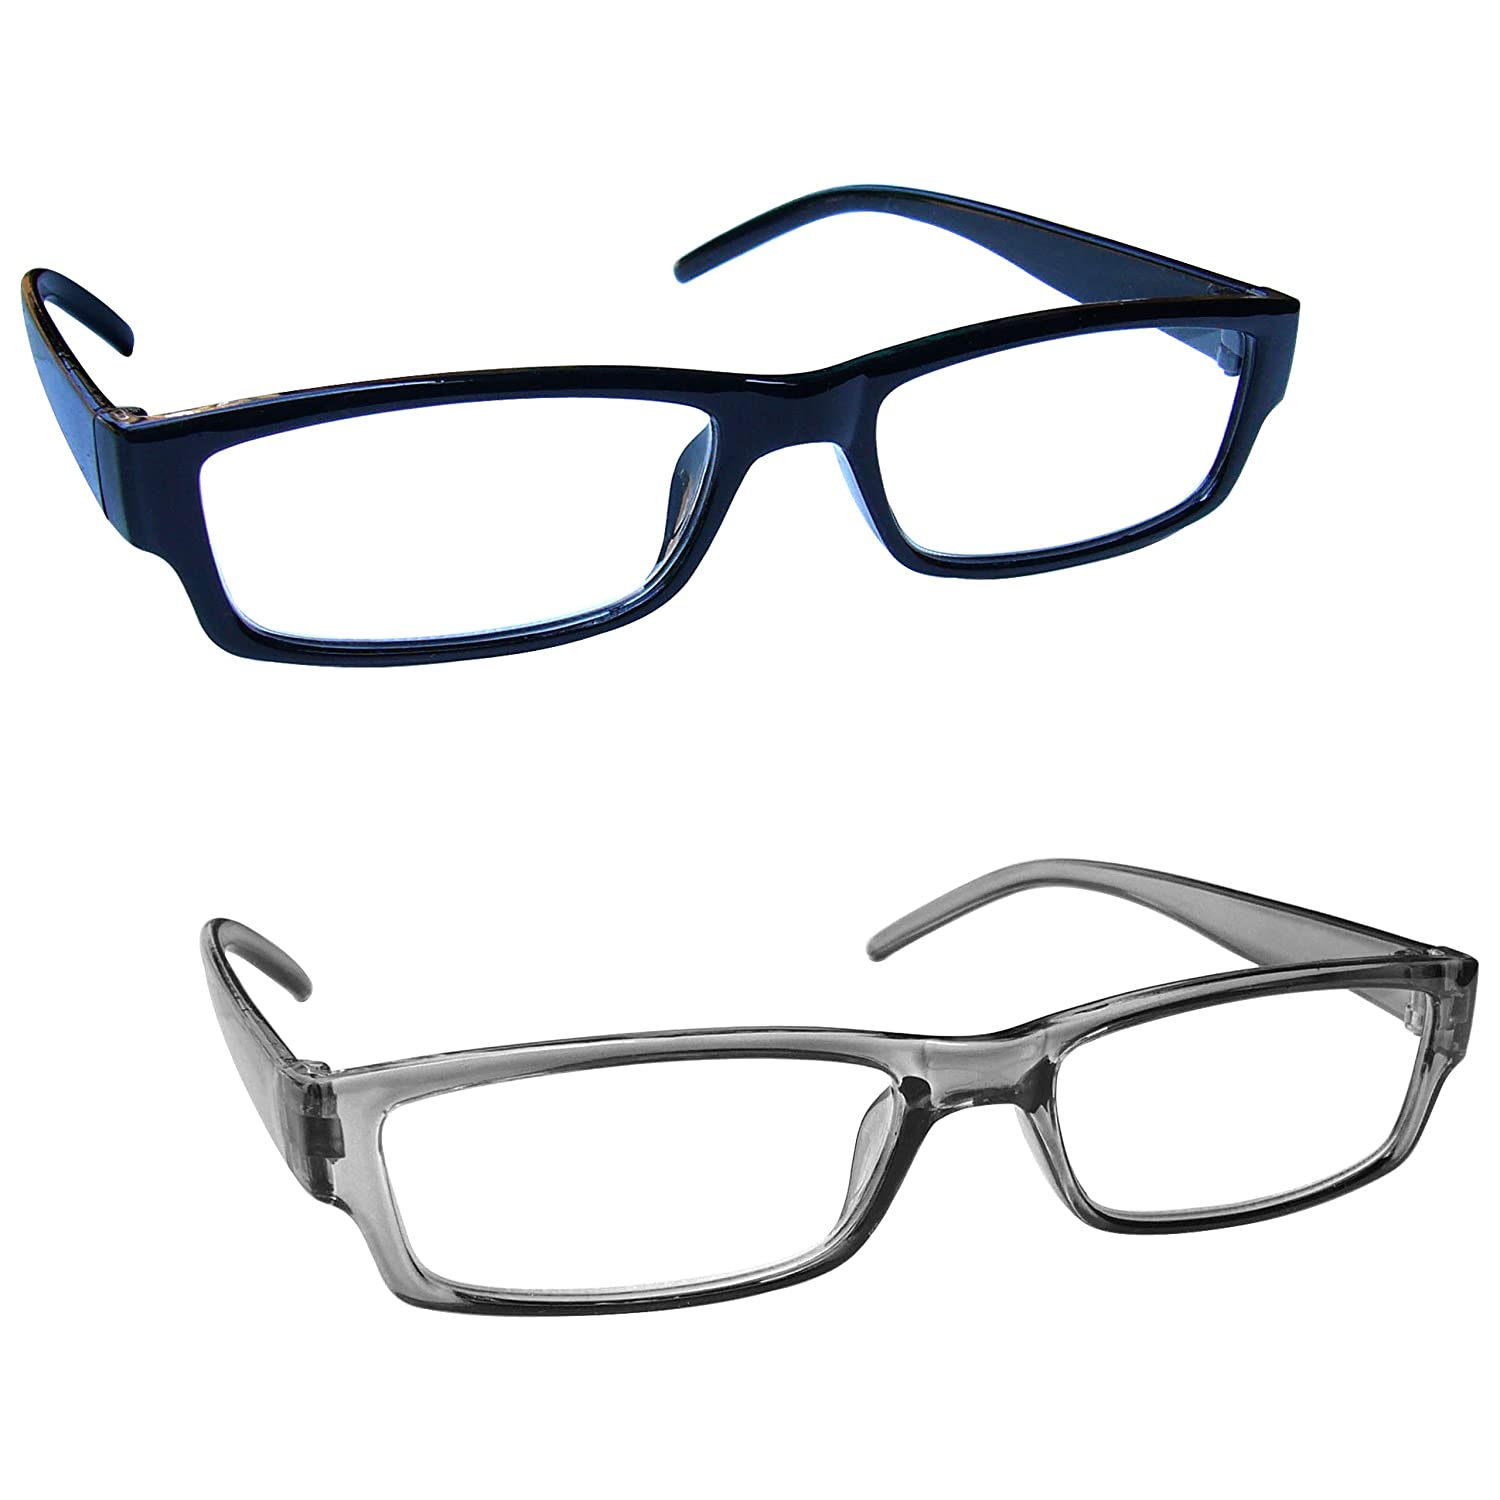 b704935a03 Amazon.com  The Reading Glasses Company Black   Brown Tortoiseshell  Lightweight Readers Value 2 Pack Mens Womens RR32-12 +1.50  Health    Personal Care